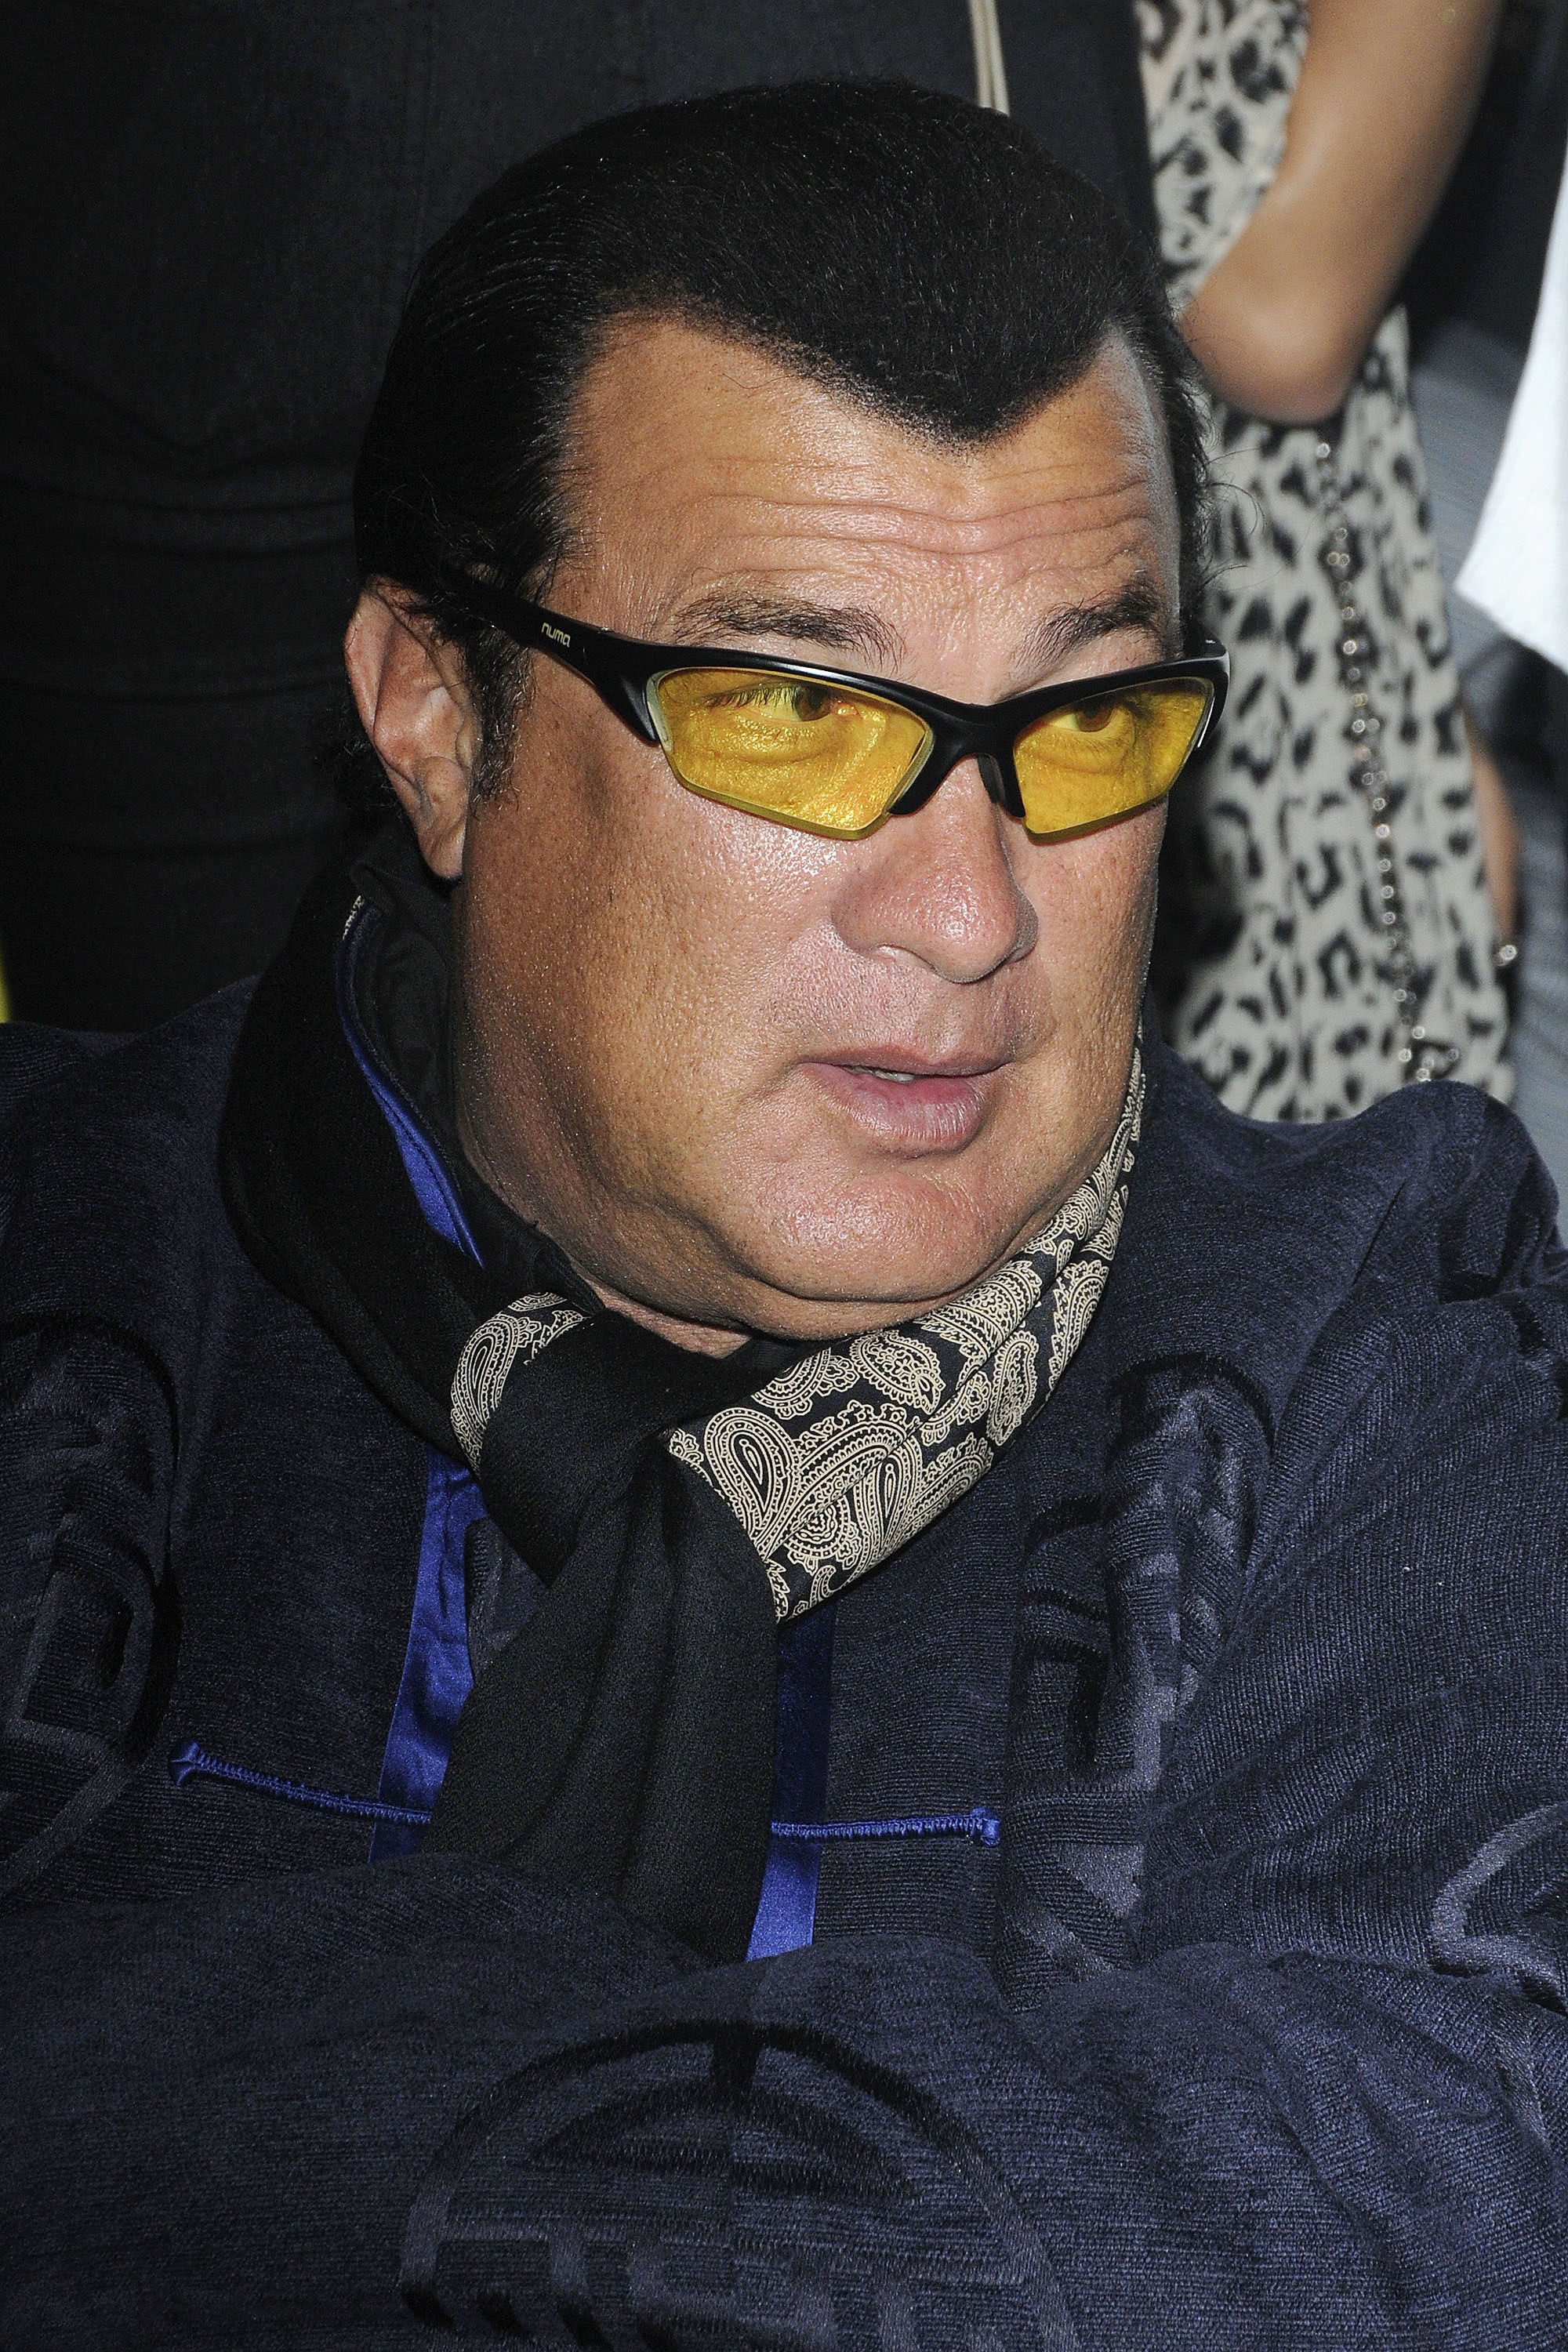 Steven Seagal at the 'Teenage Paparazzo' post-screening gala at Live Nightclub in Toronto on Oct. 12, 2011. (Dominic Chan/ WENN.com)